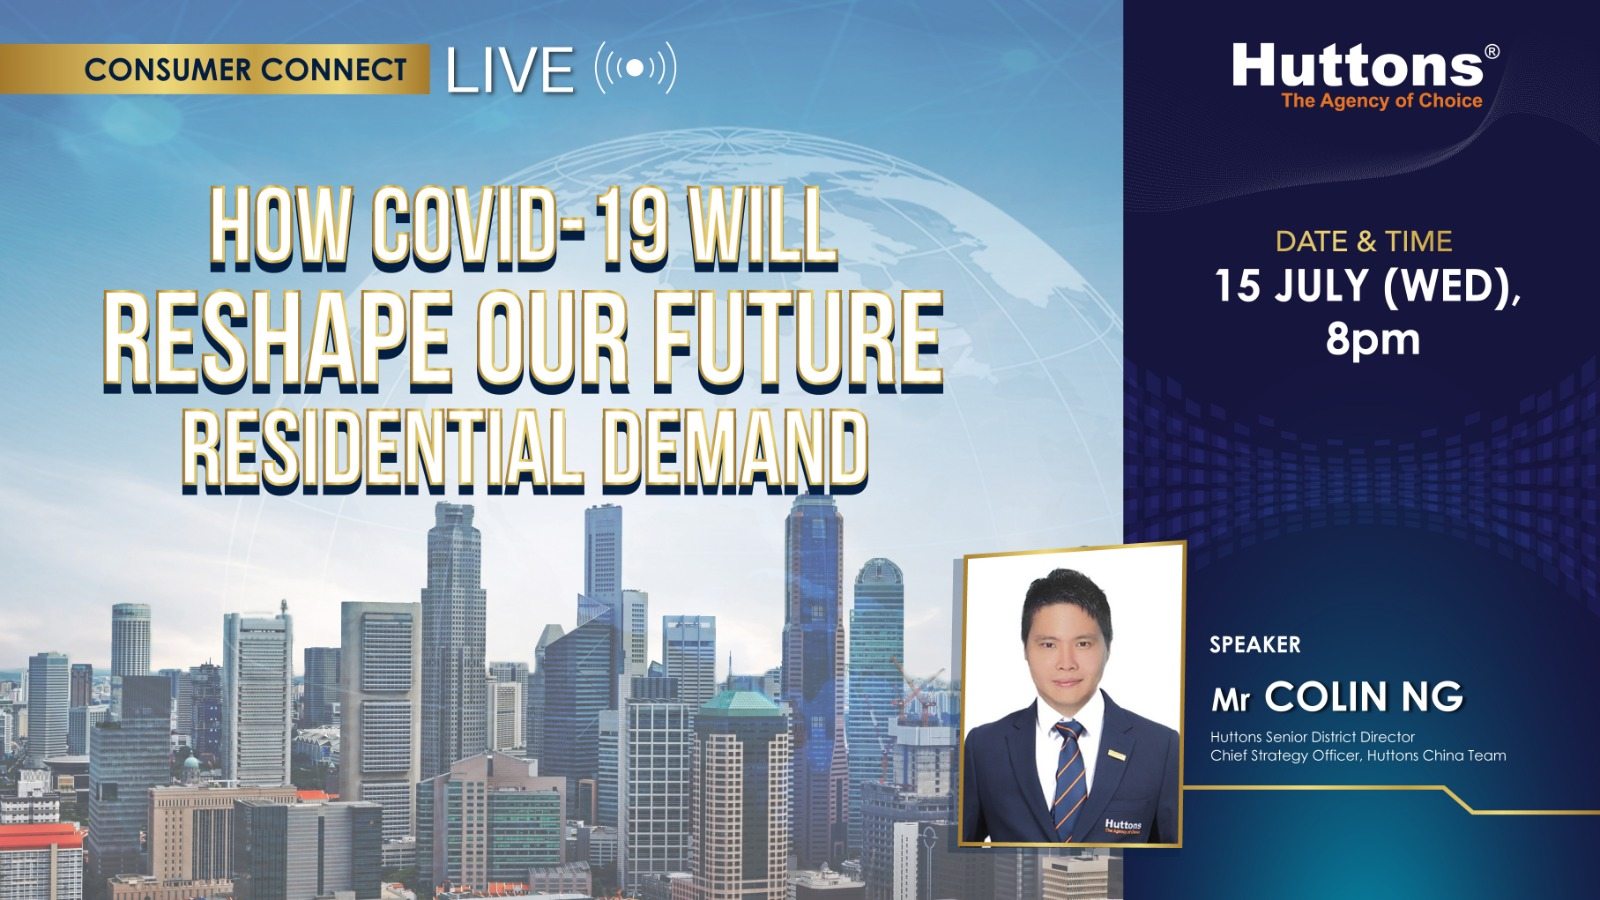 Huttons Consumer Connect - How Covid-19 will Reshape our Future Residential Demand